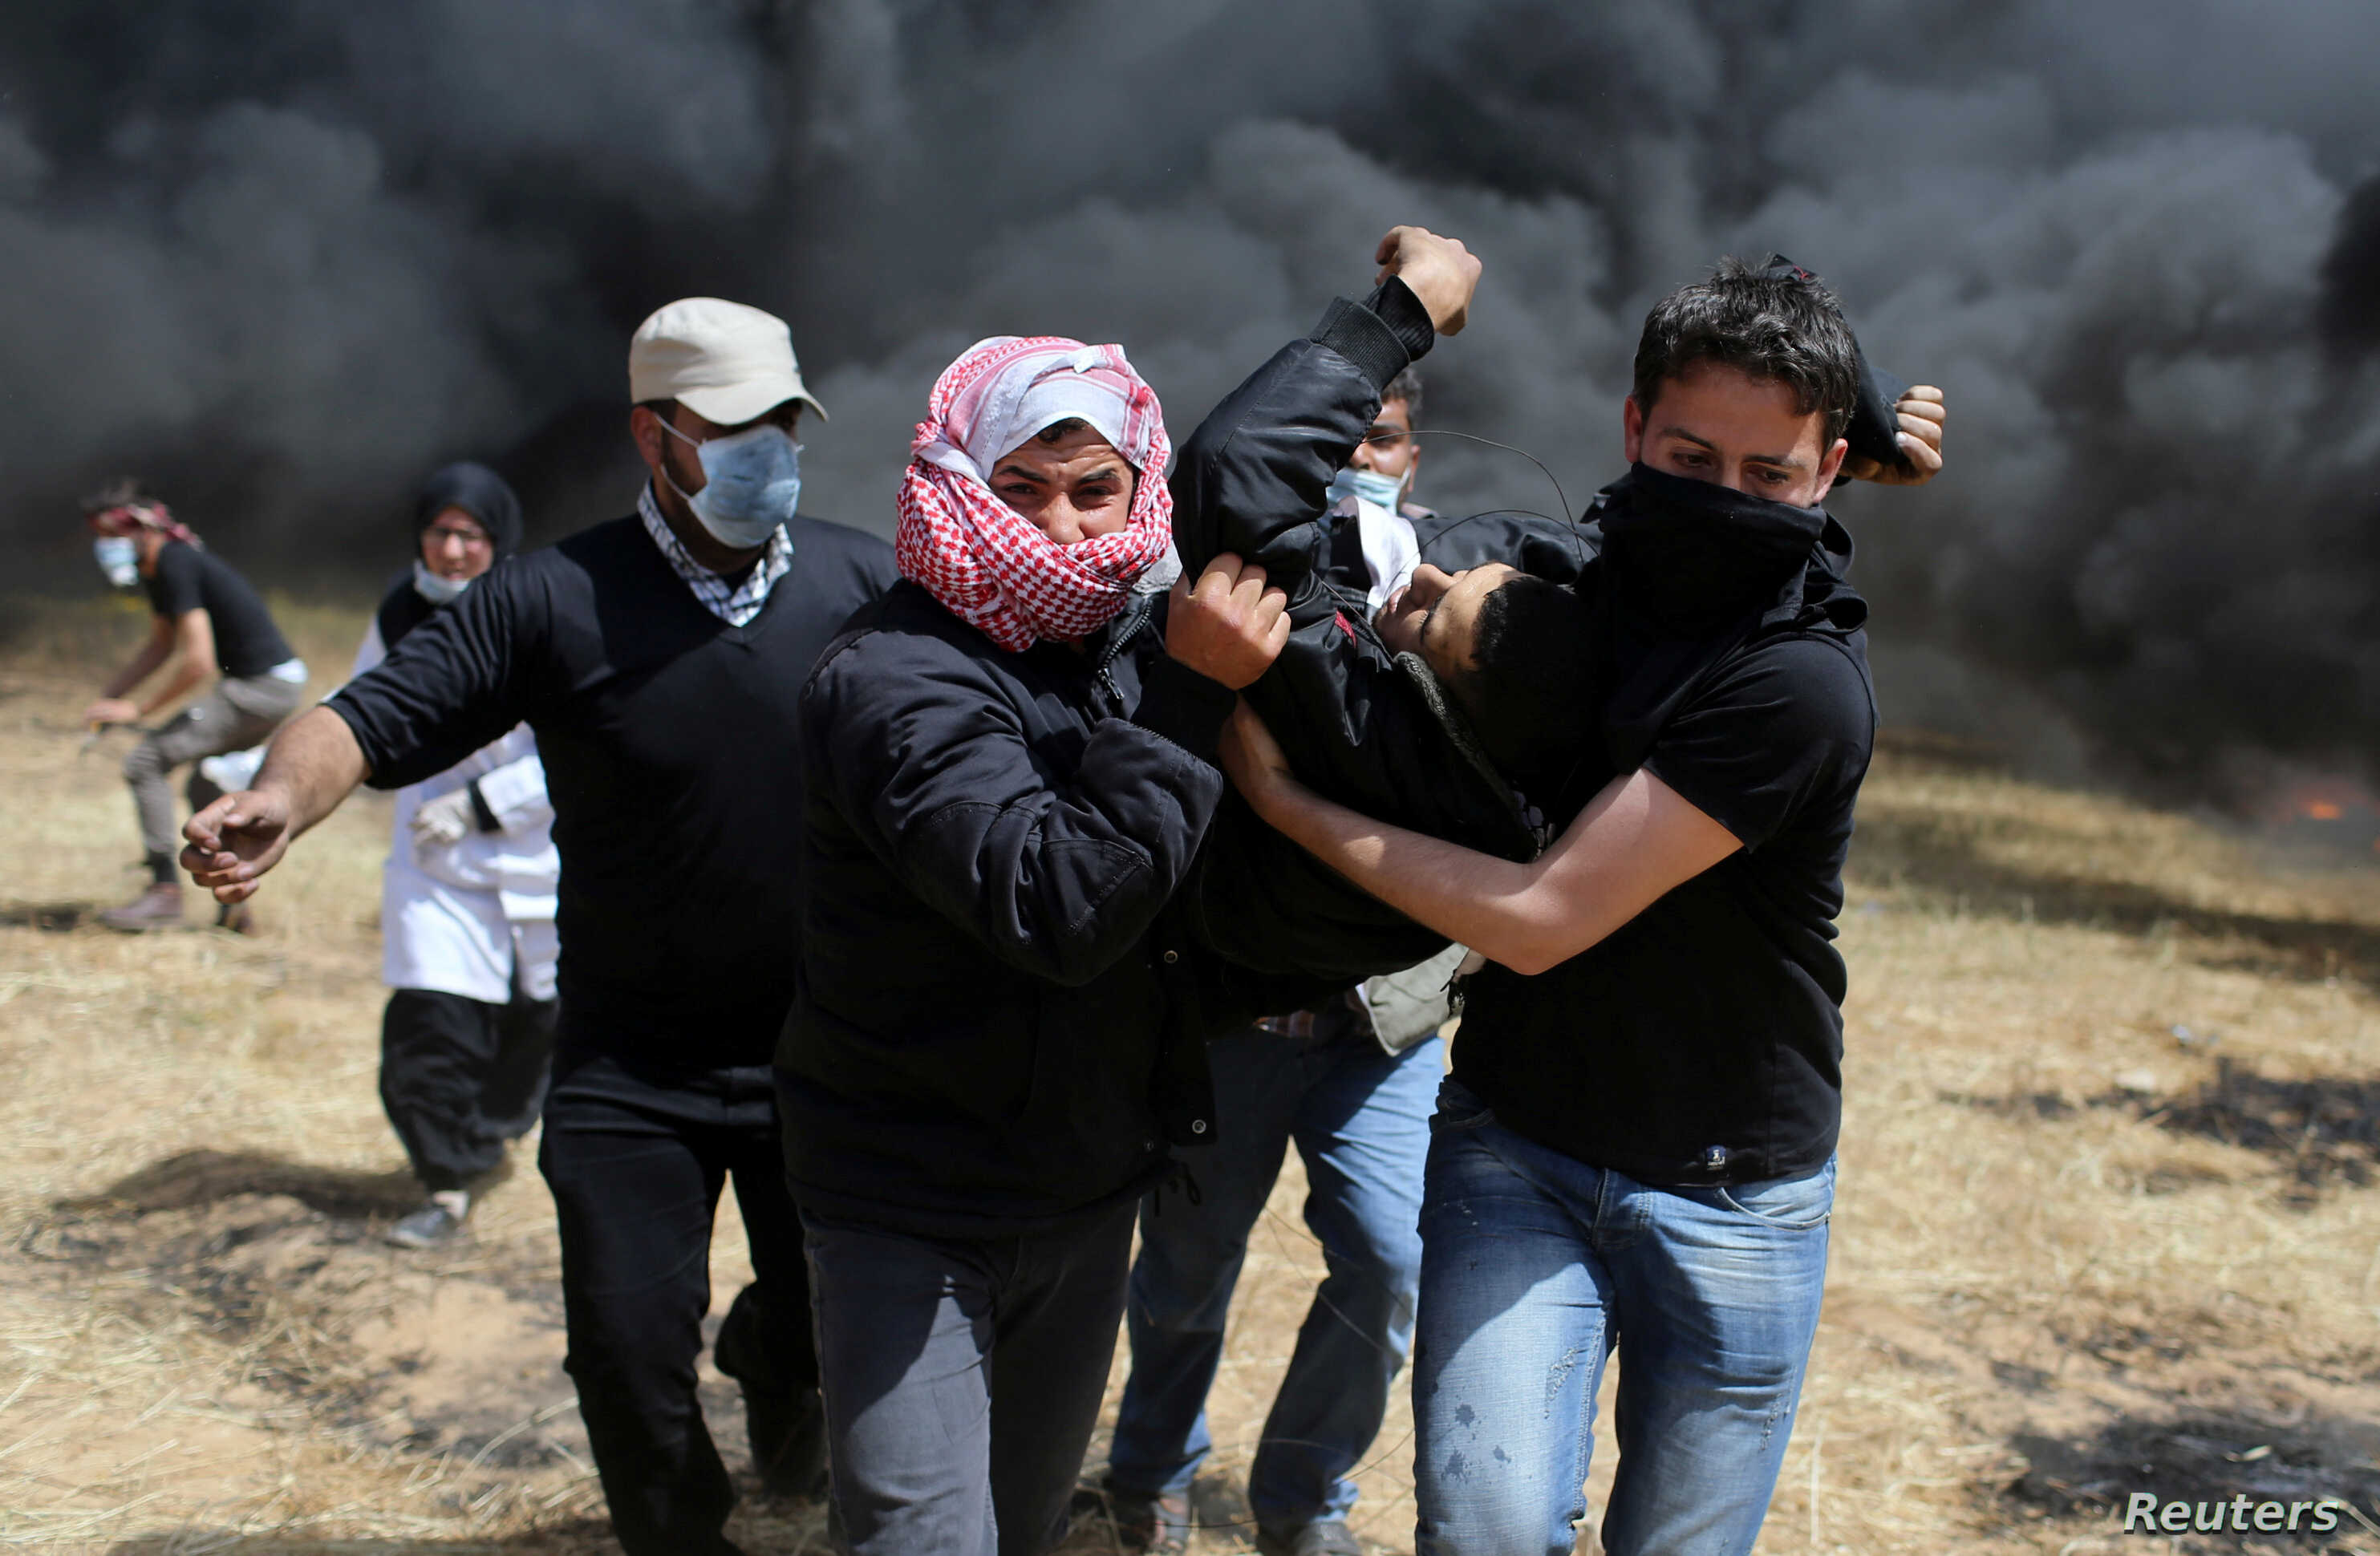 A wounded Palestinian demonstrator is evacuated during clashes with Israeli troops at the Israel-Gaza border at a protest demanding the right to return to their homeland, in the southern Gaza Strip, April 6, 2018.